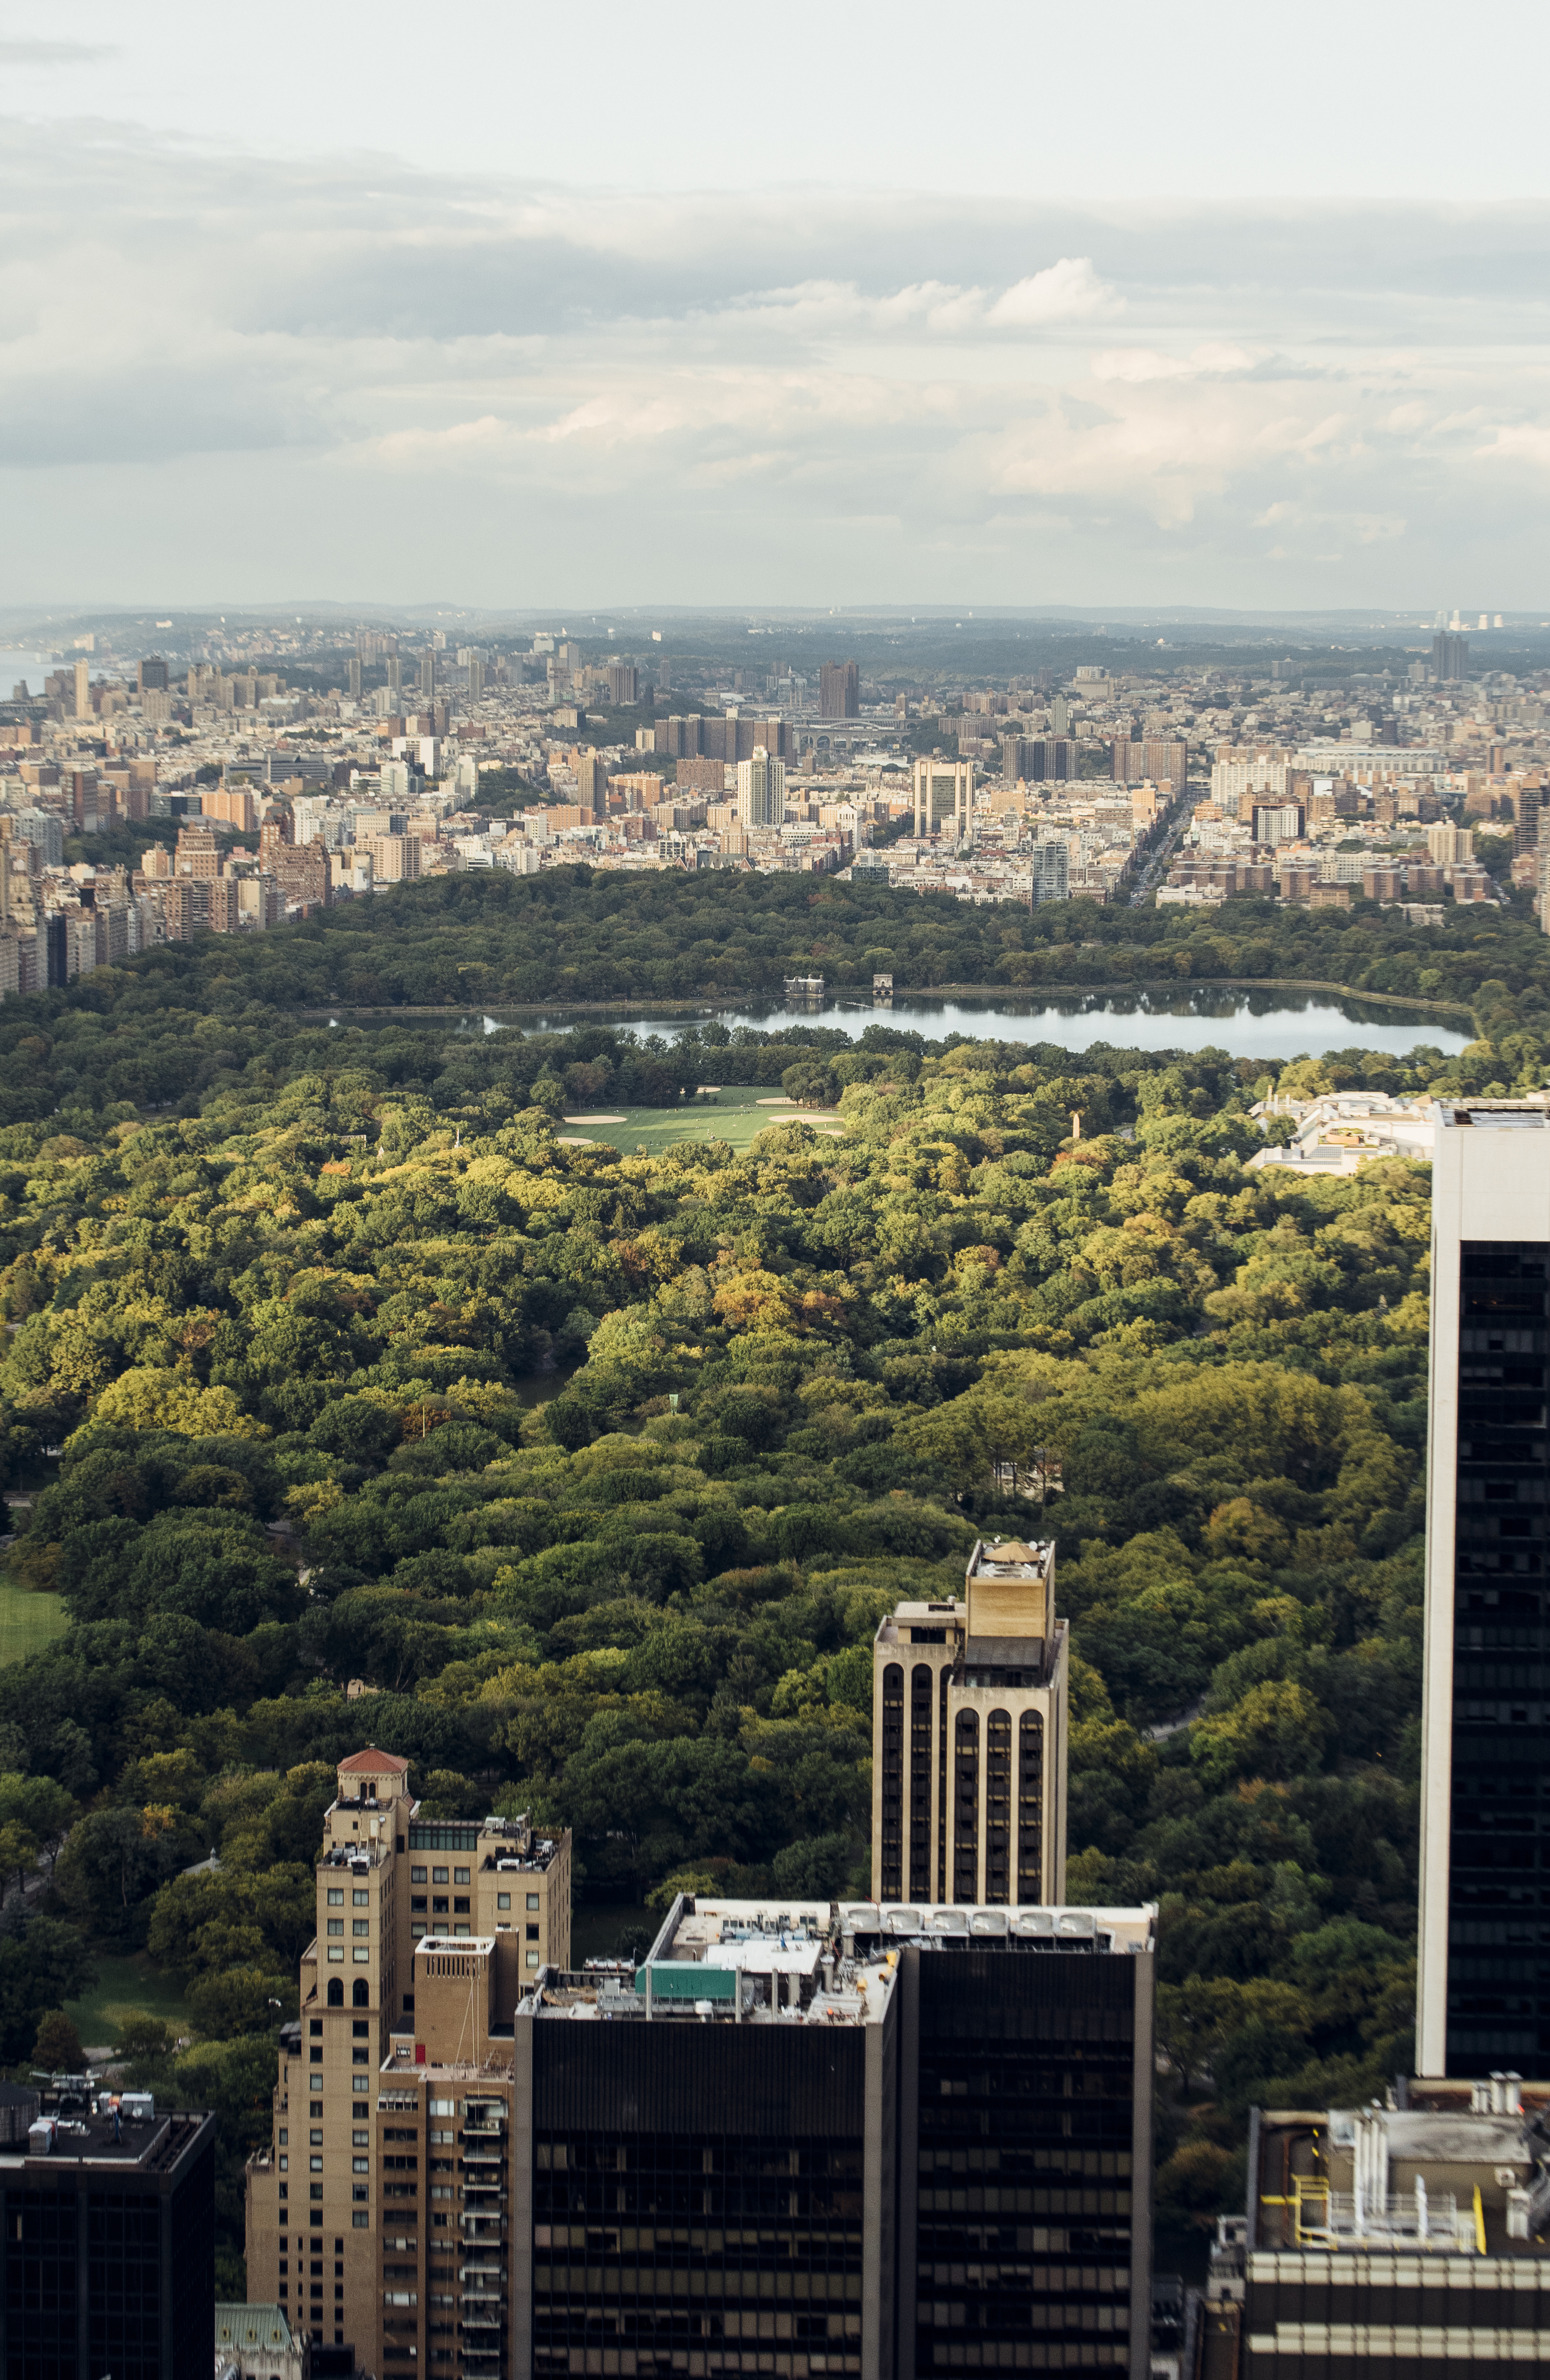 central park with skyscrapers in new york city